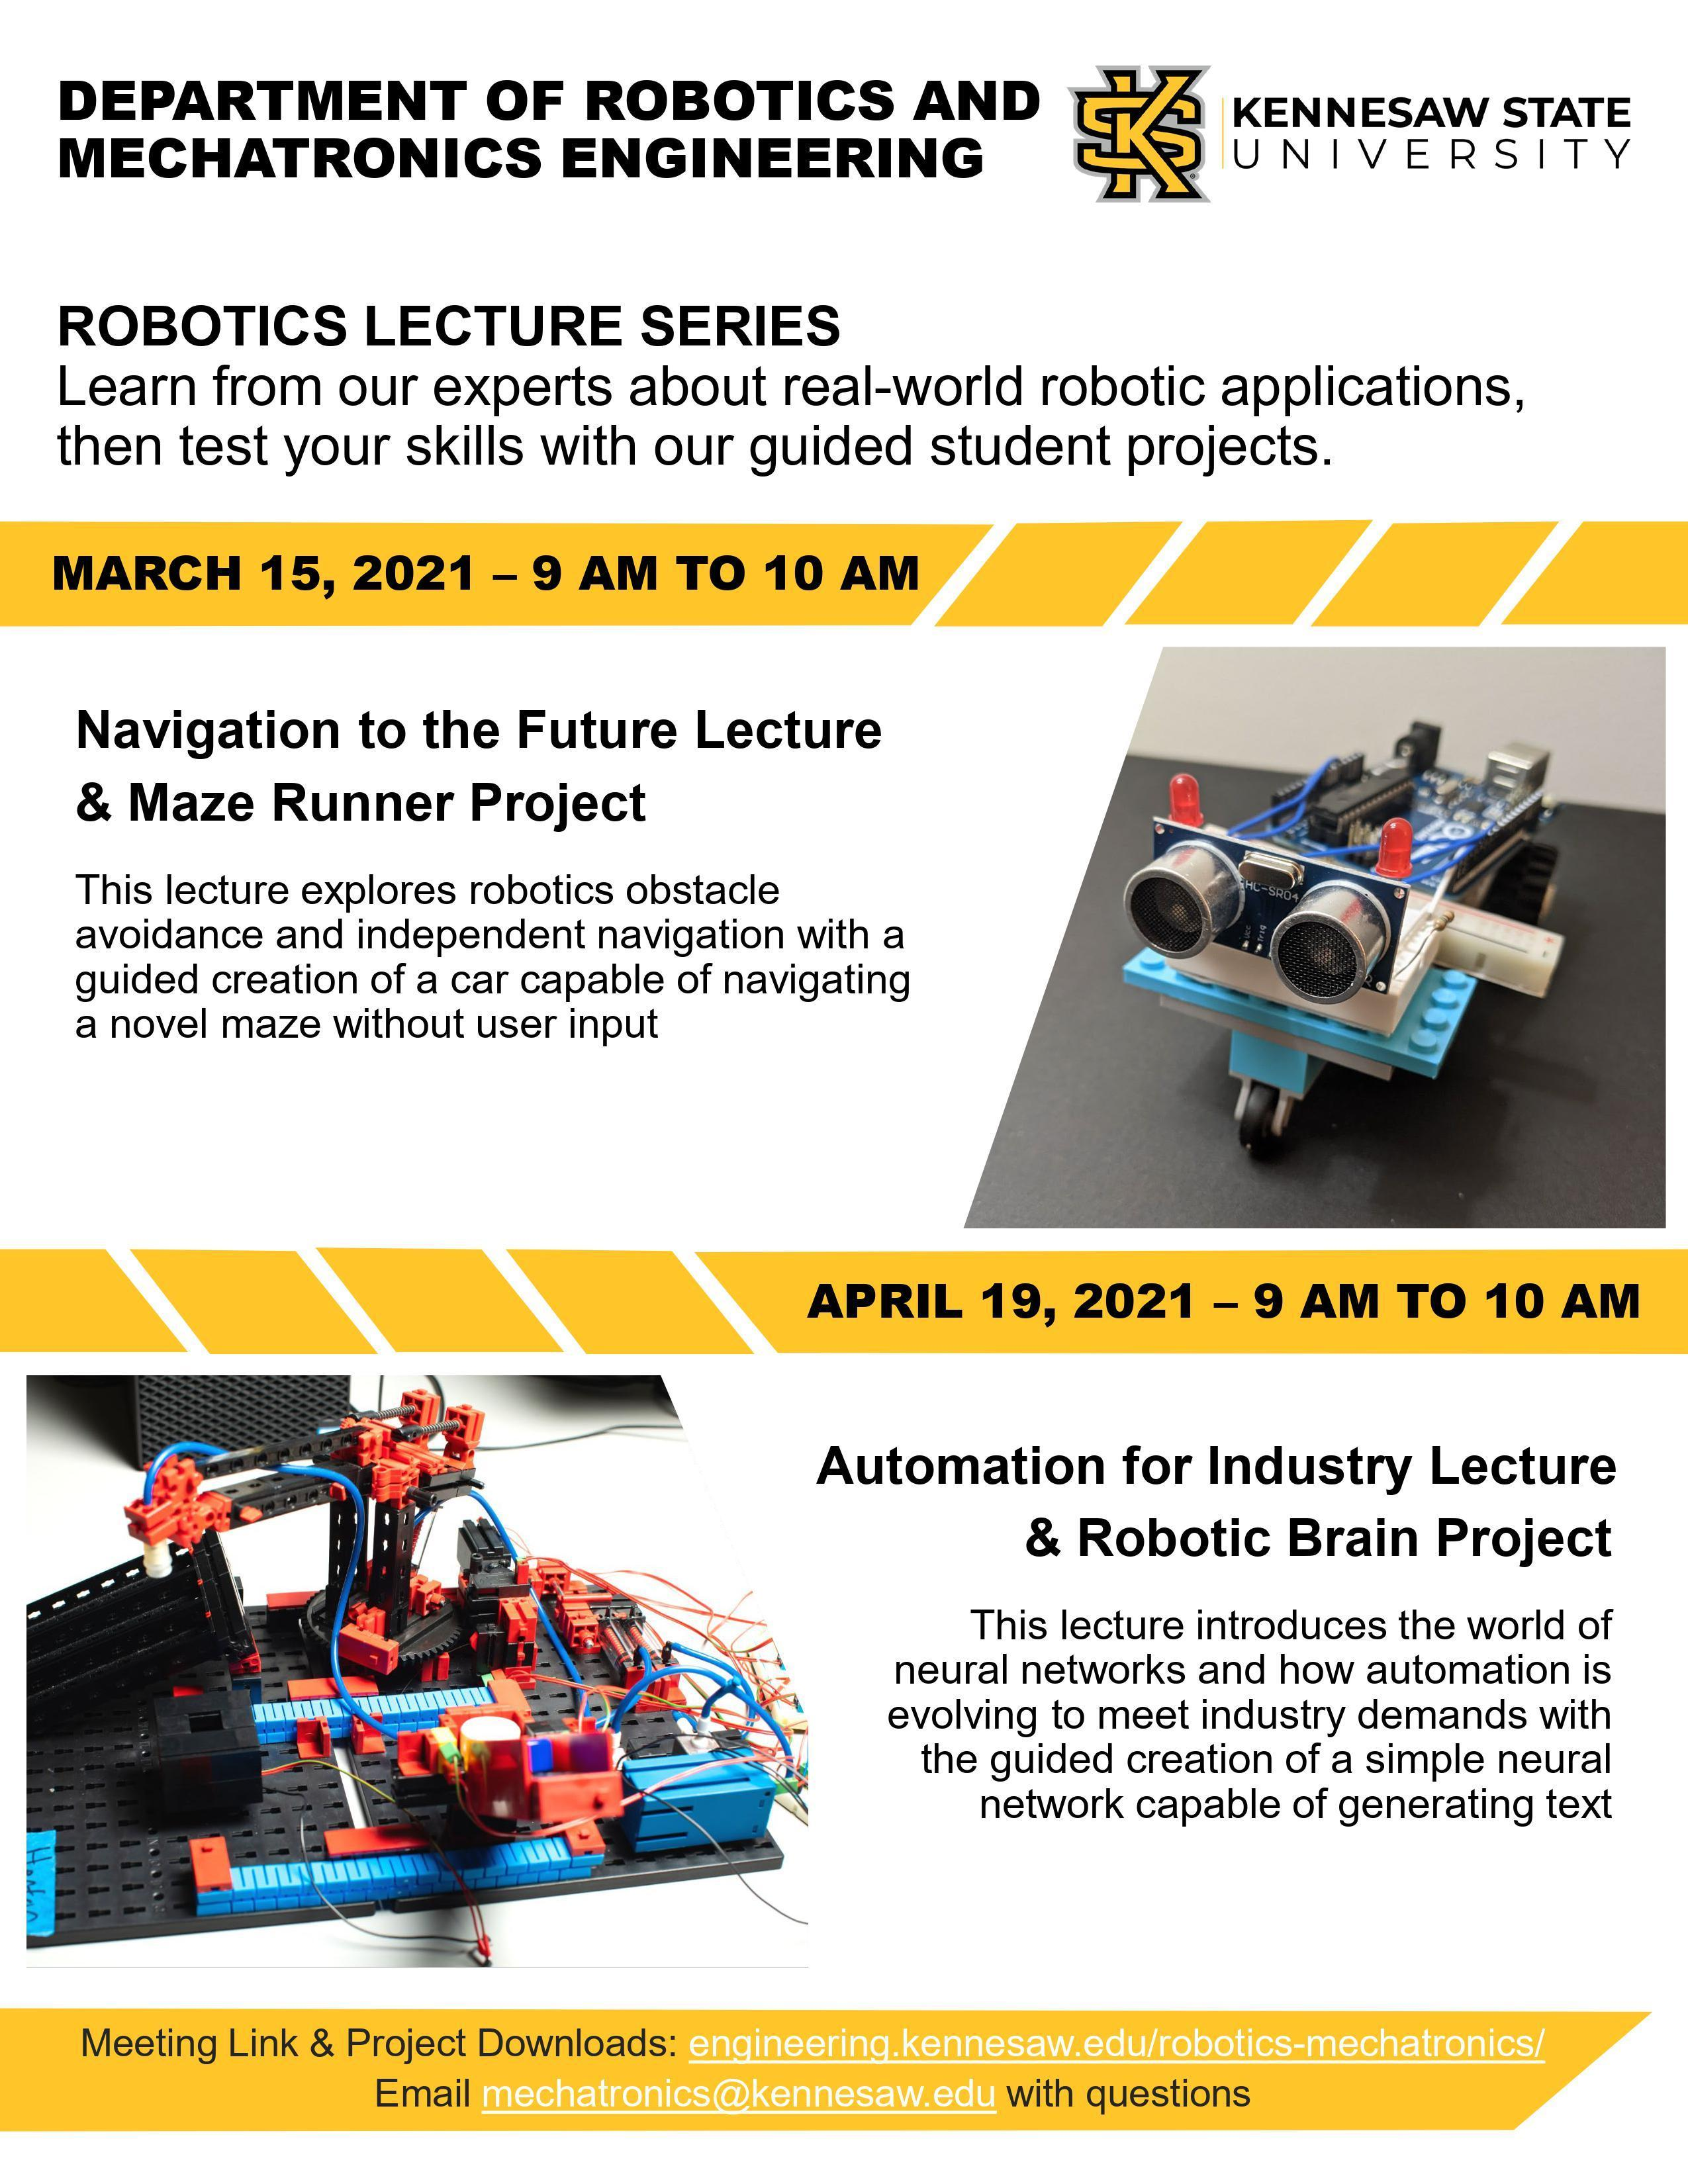 Kennesaw State Robotics Lecture Series